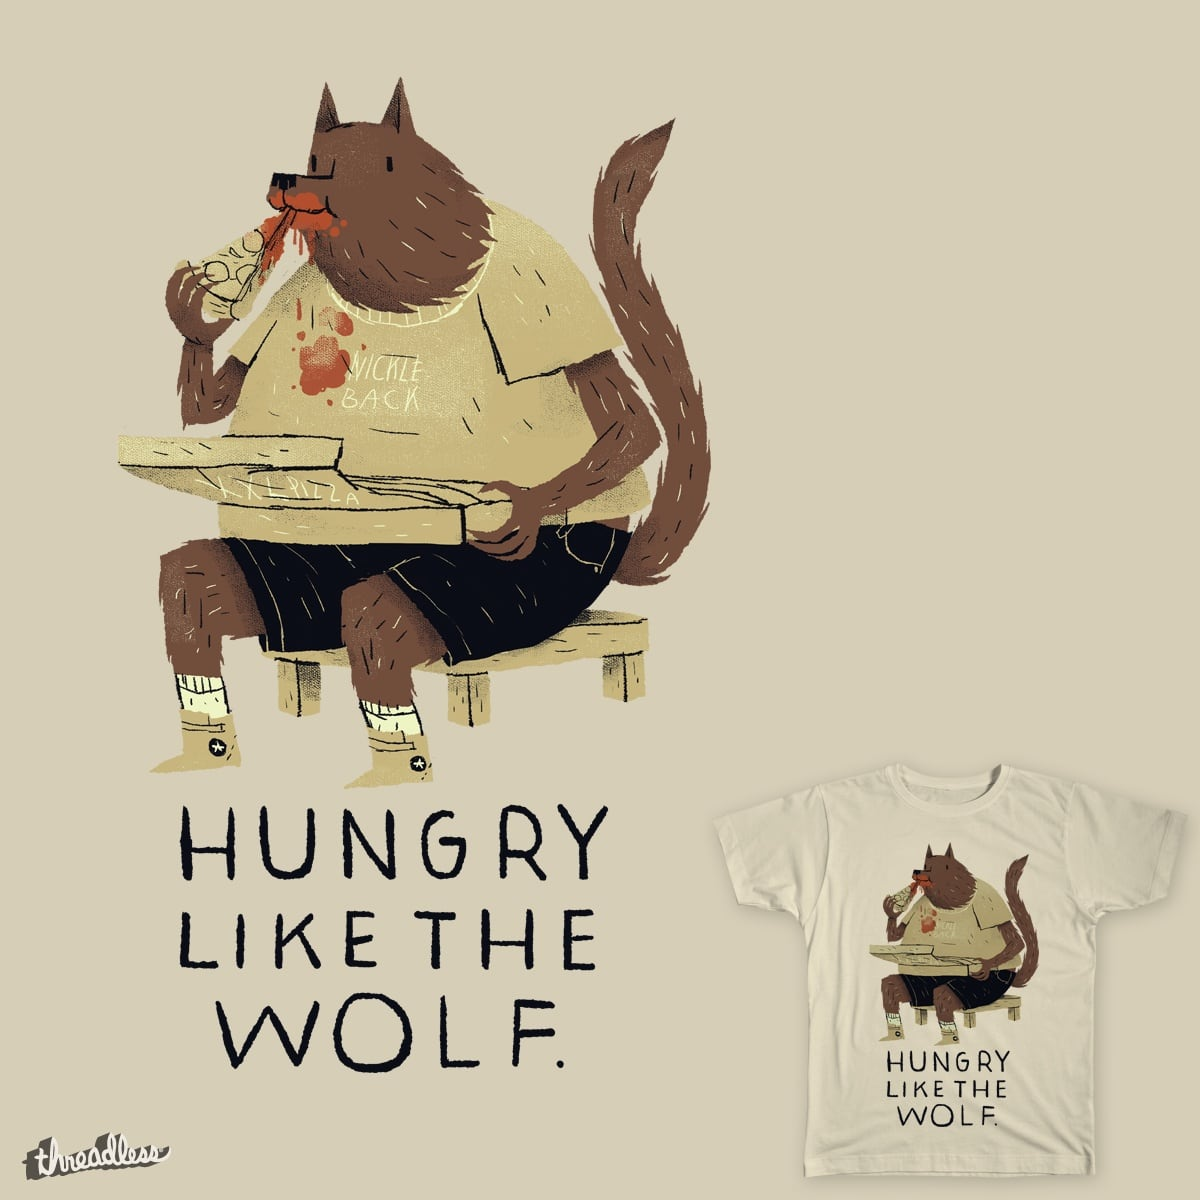 hungry like the wolf by louisroskosch on Threadless